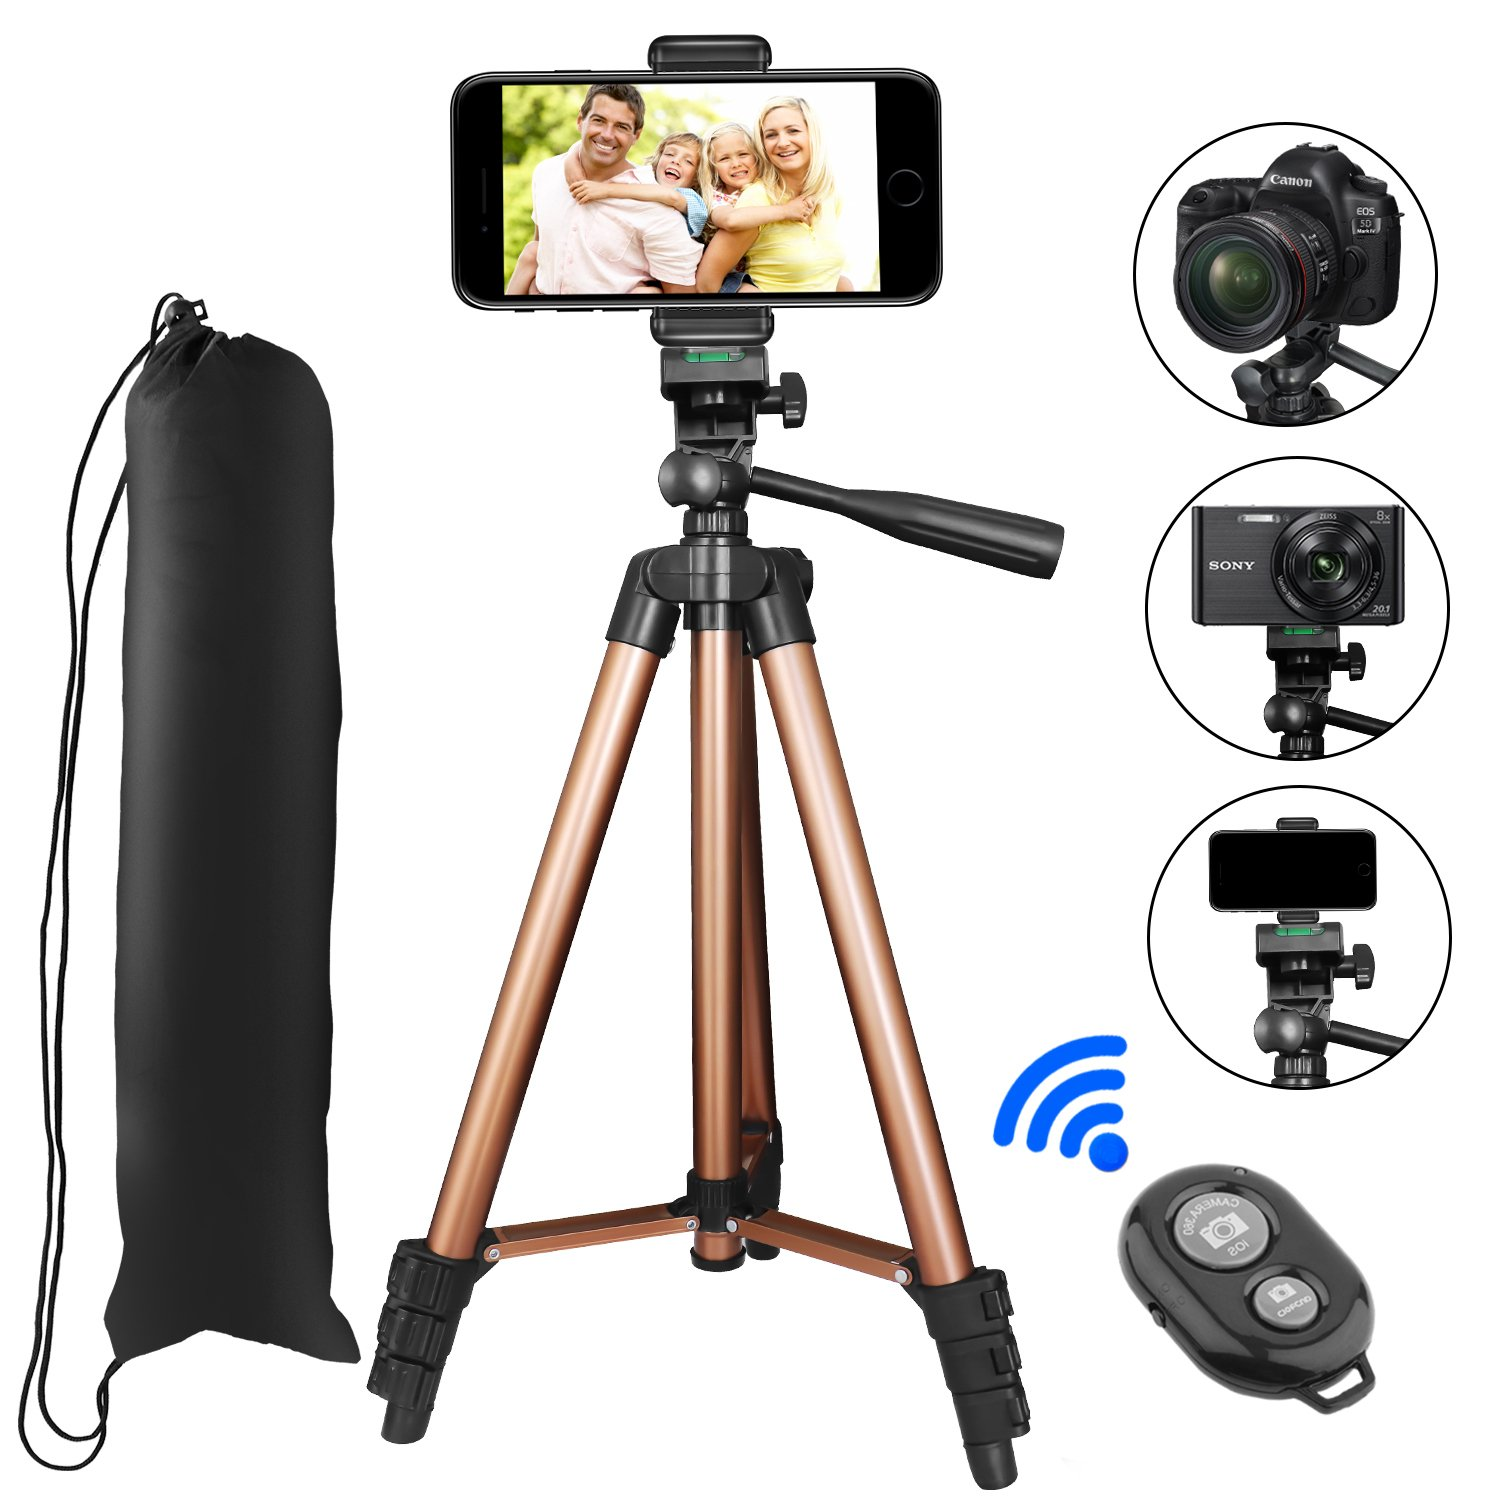 Tripod for iPhone, PEYOU 50'' Aluminum Camera Tripod+Bluetooth Wireless Remote Control Shutter+Universal Smartphone Holder Mount for iPhone X/8 Plus/8/7/7 Plus/6 Plus, Galaxy Note 8/S9 Plus/S9/S8/S7/S6